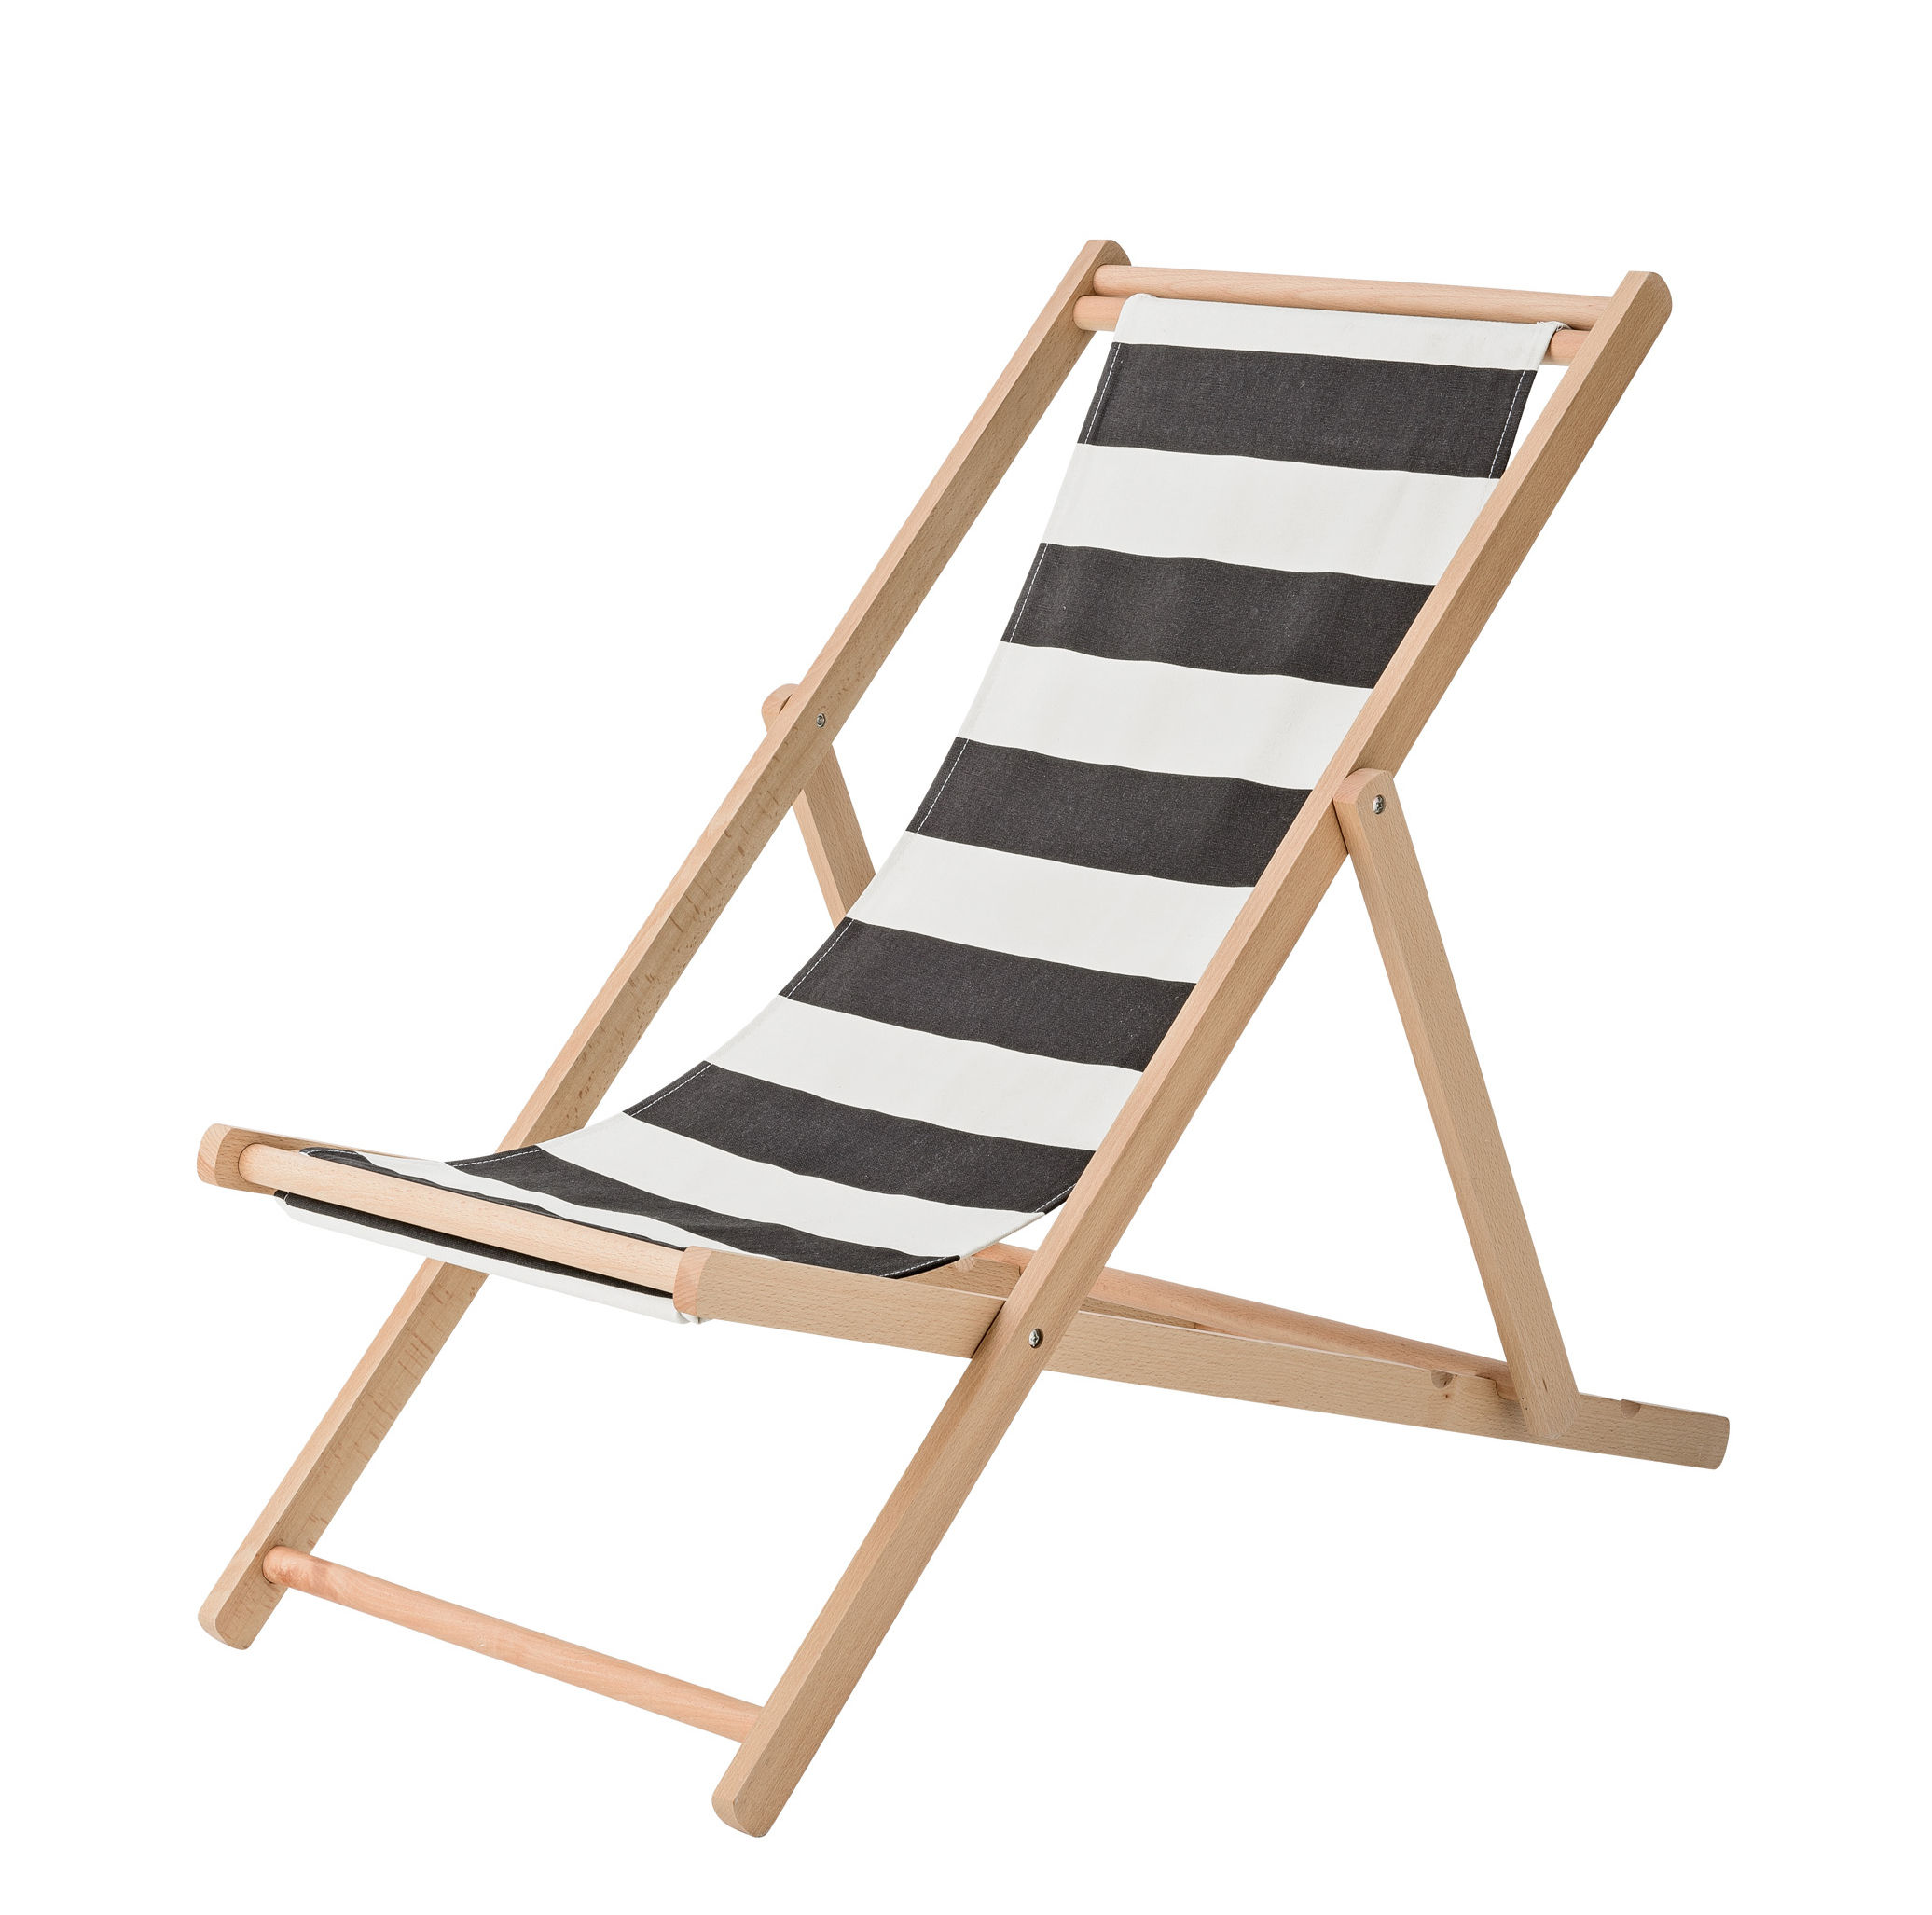 Outdoor - Sun Loungers & Hammocks - Reclining chair - / Folding & adjustable by Bloomingville - Black stripes - Cotton, Natural beechwood